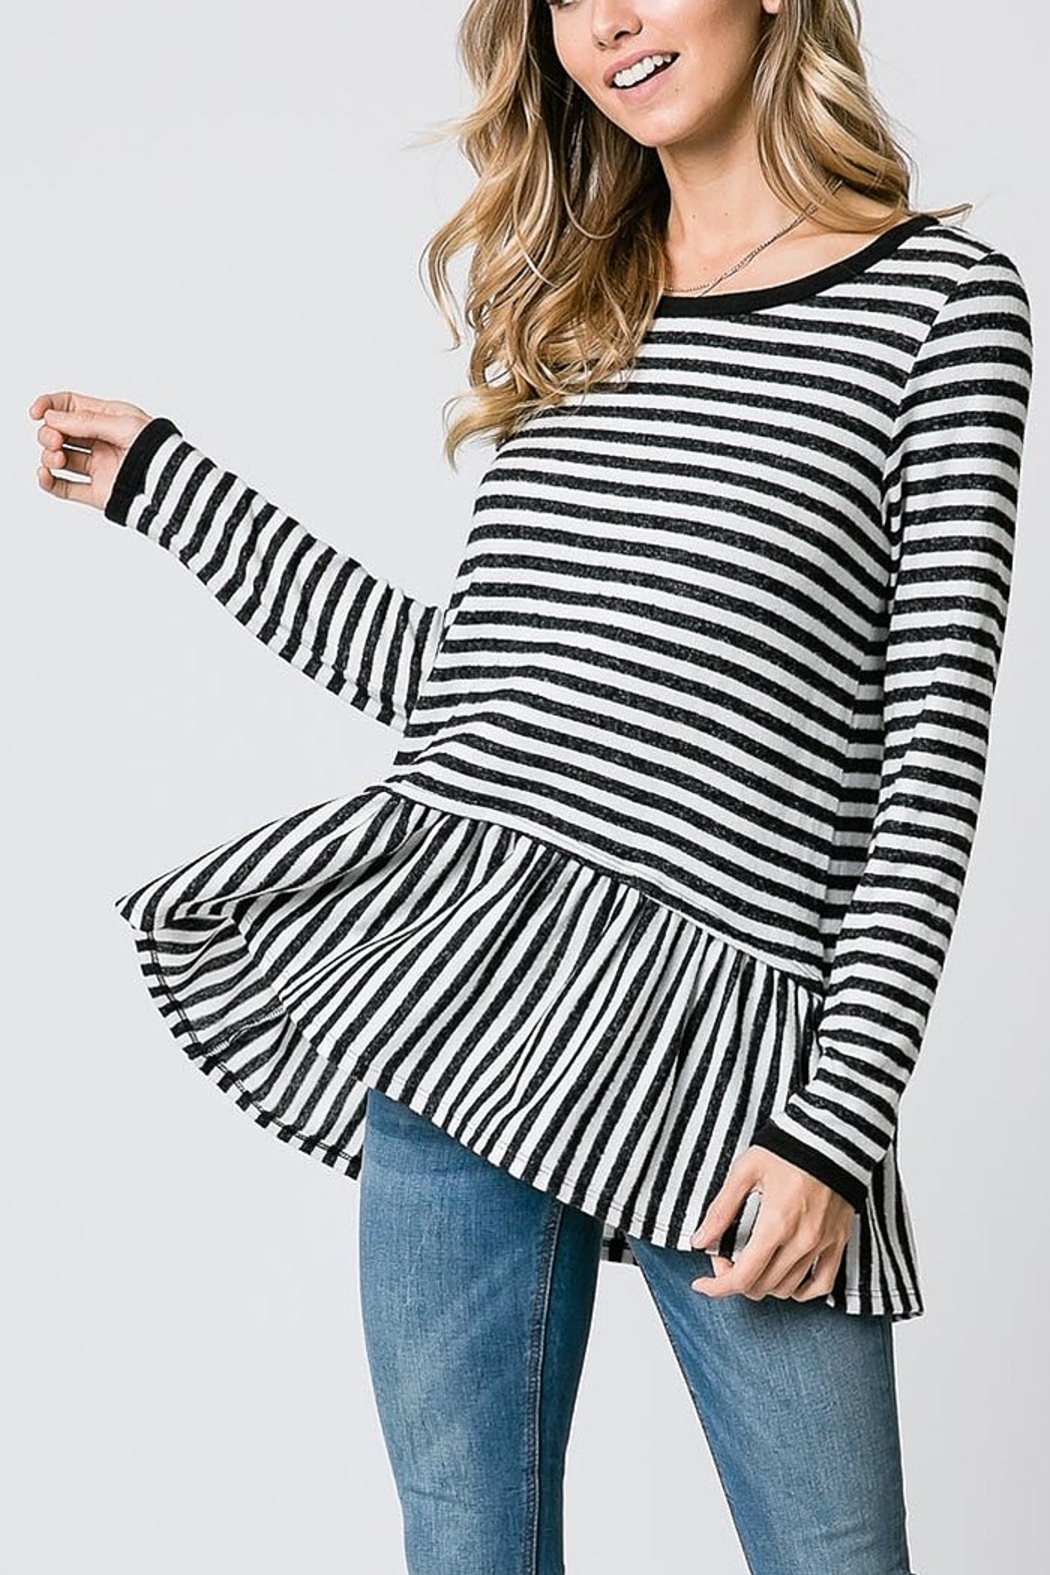 Lyn-Maree's  Peplum Long Sleeve Top - Front Cropped Image